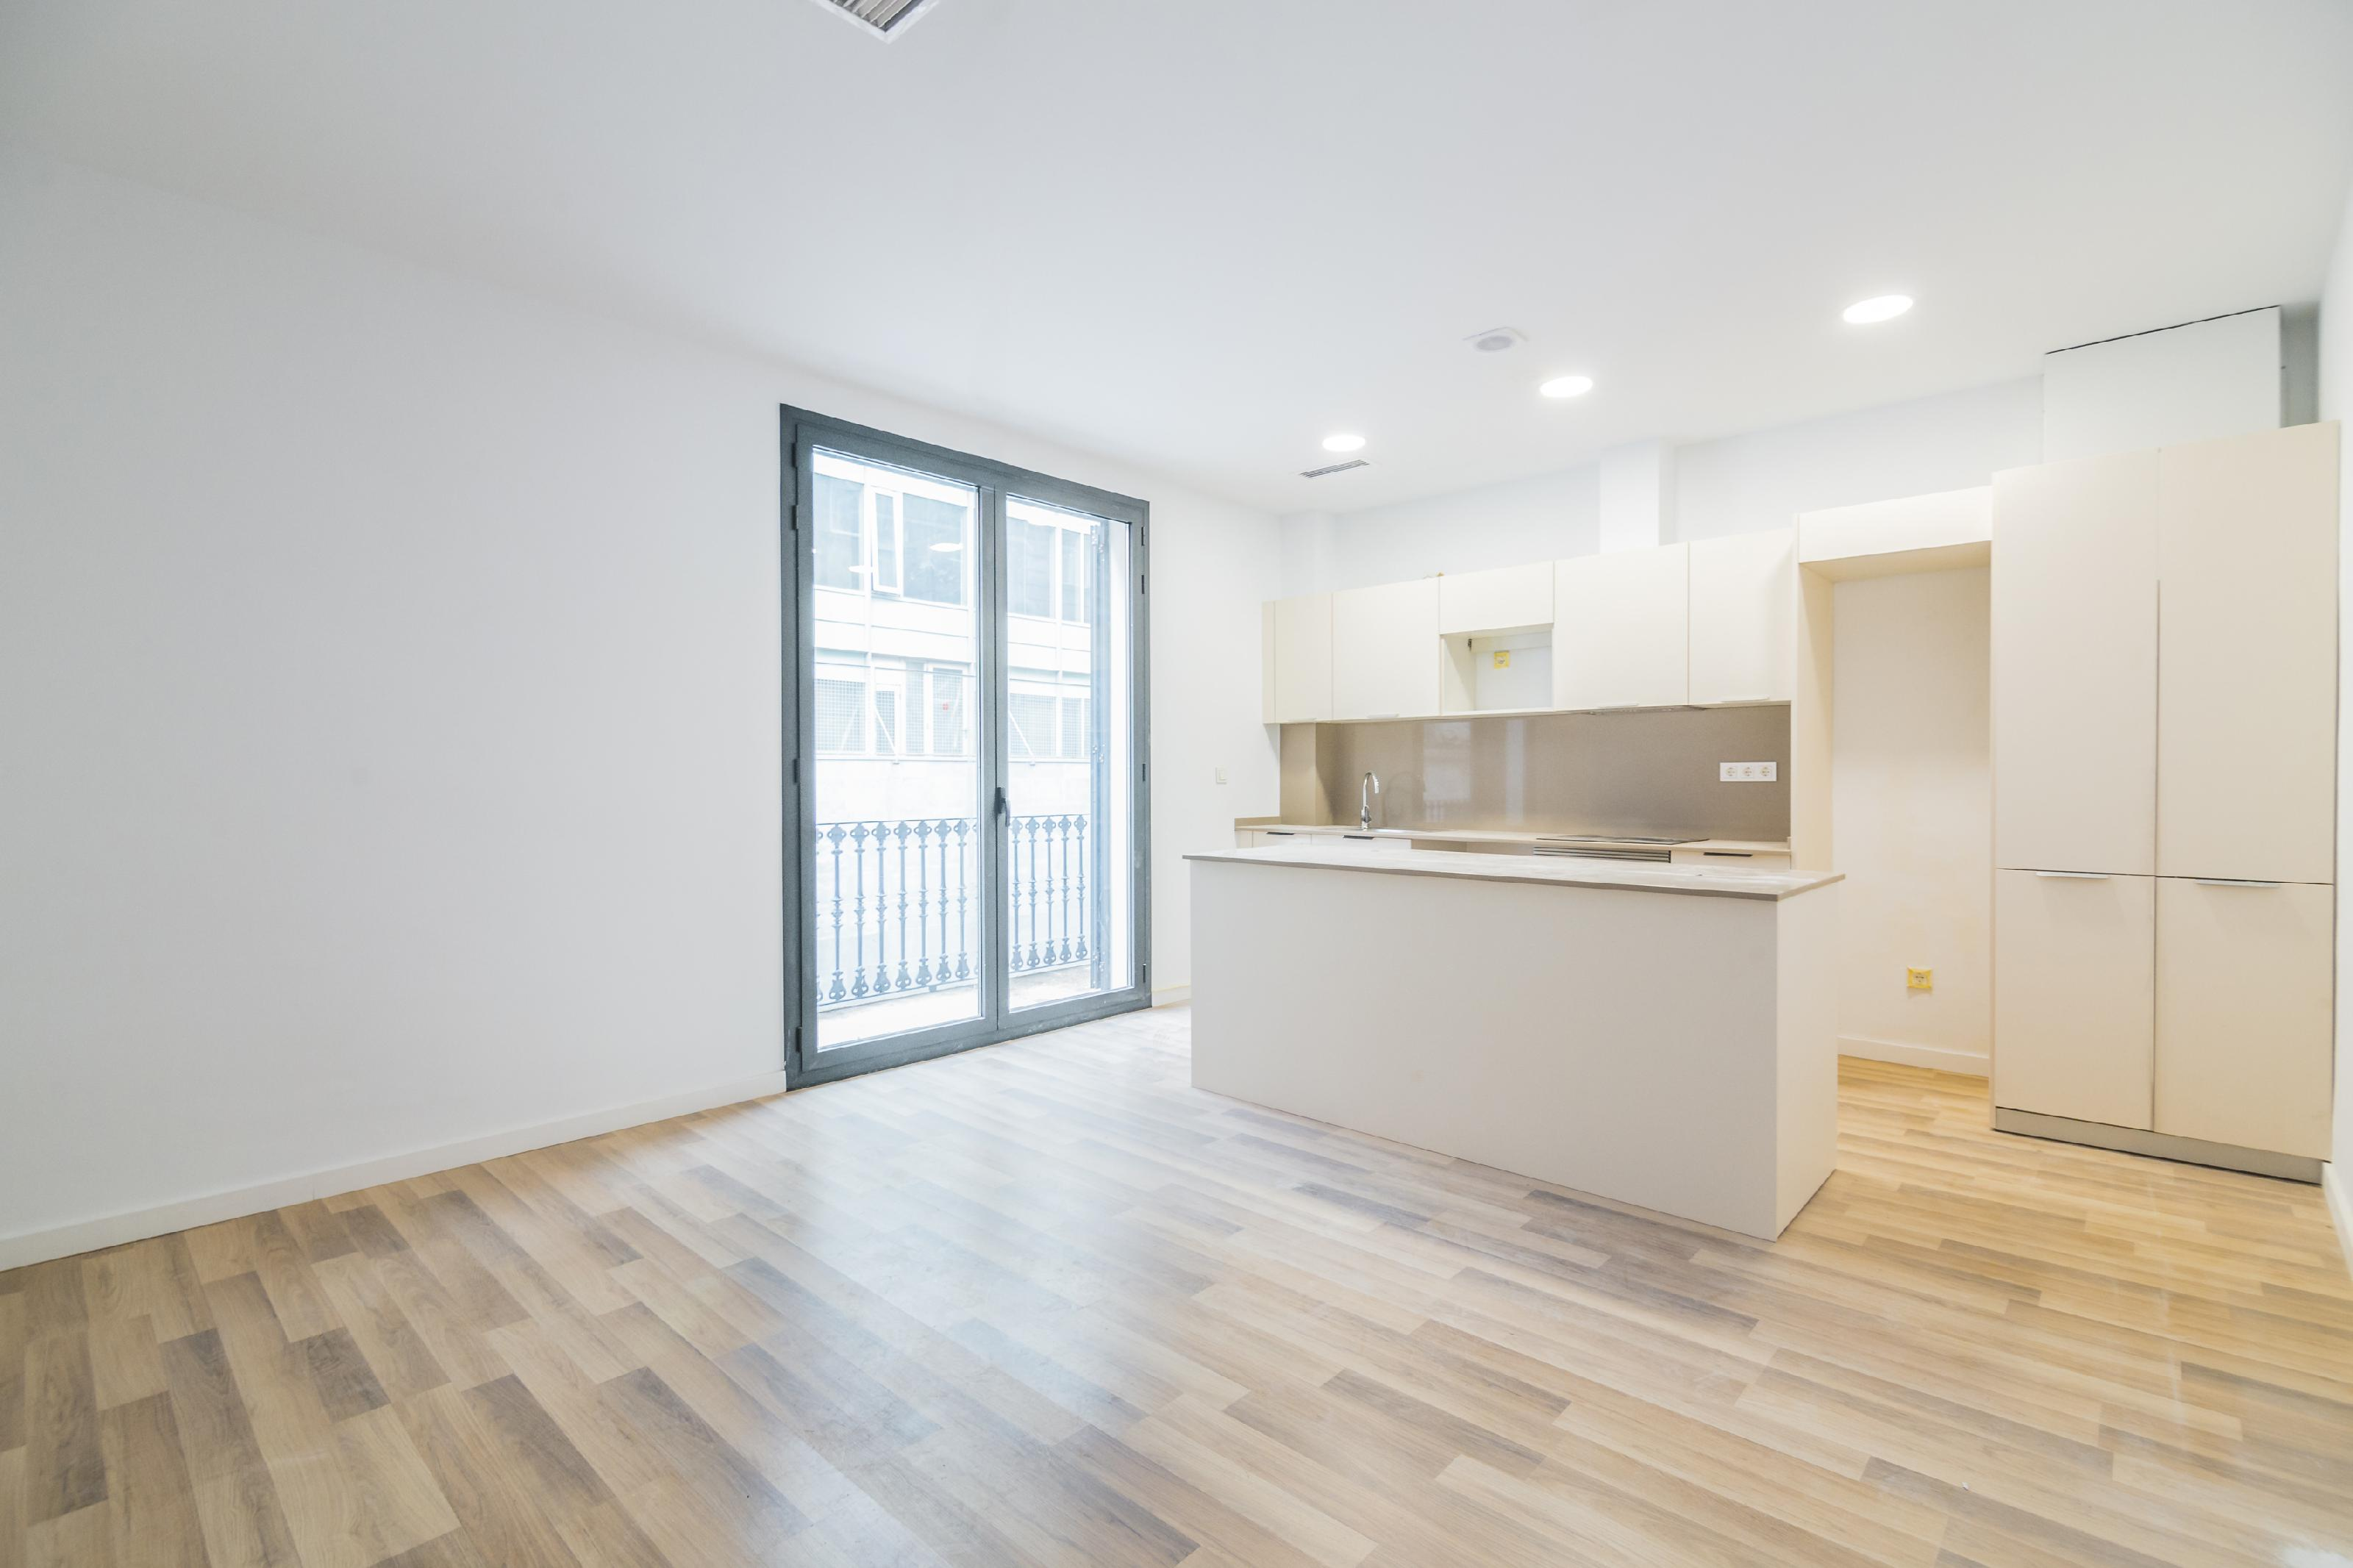 220651 Apartment for sale in Sarrià-Sant Gervasi, Sant Gervasi-Galvany 10